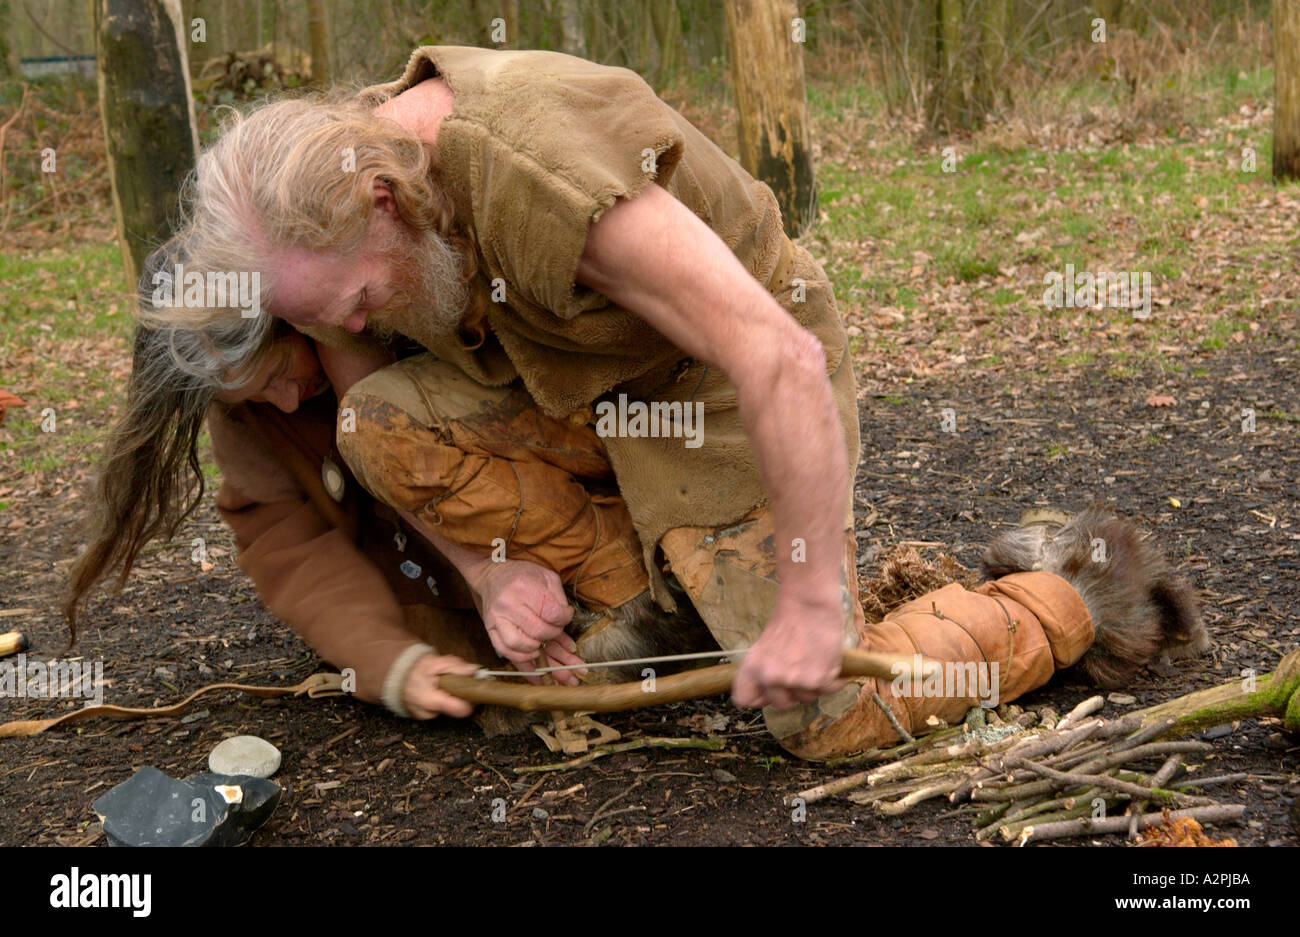 Prehistoric man & woman stone age reenactors trying to make fire at The Museum of Welsh Life St Fagans Cardiff Wales UK - Stock Image